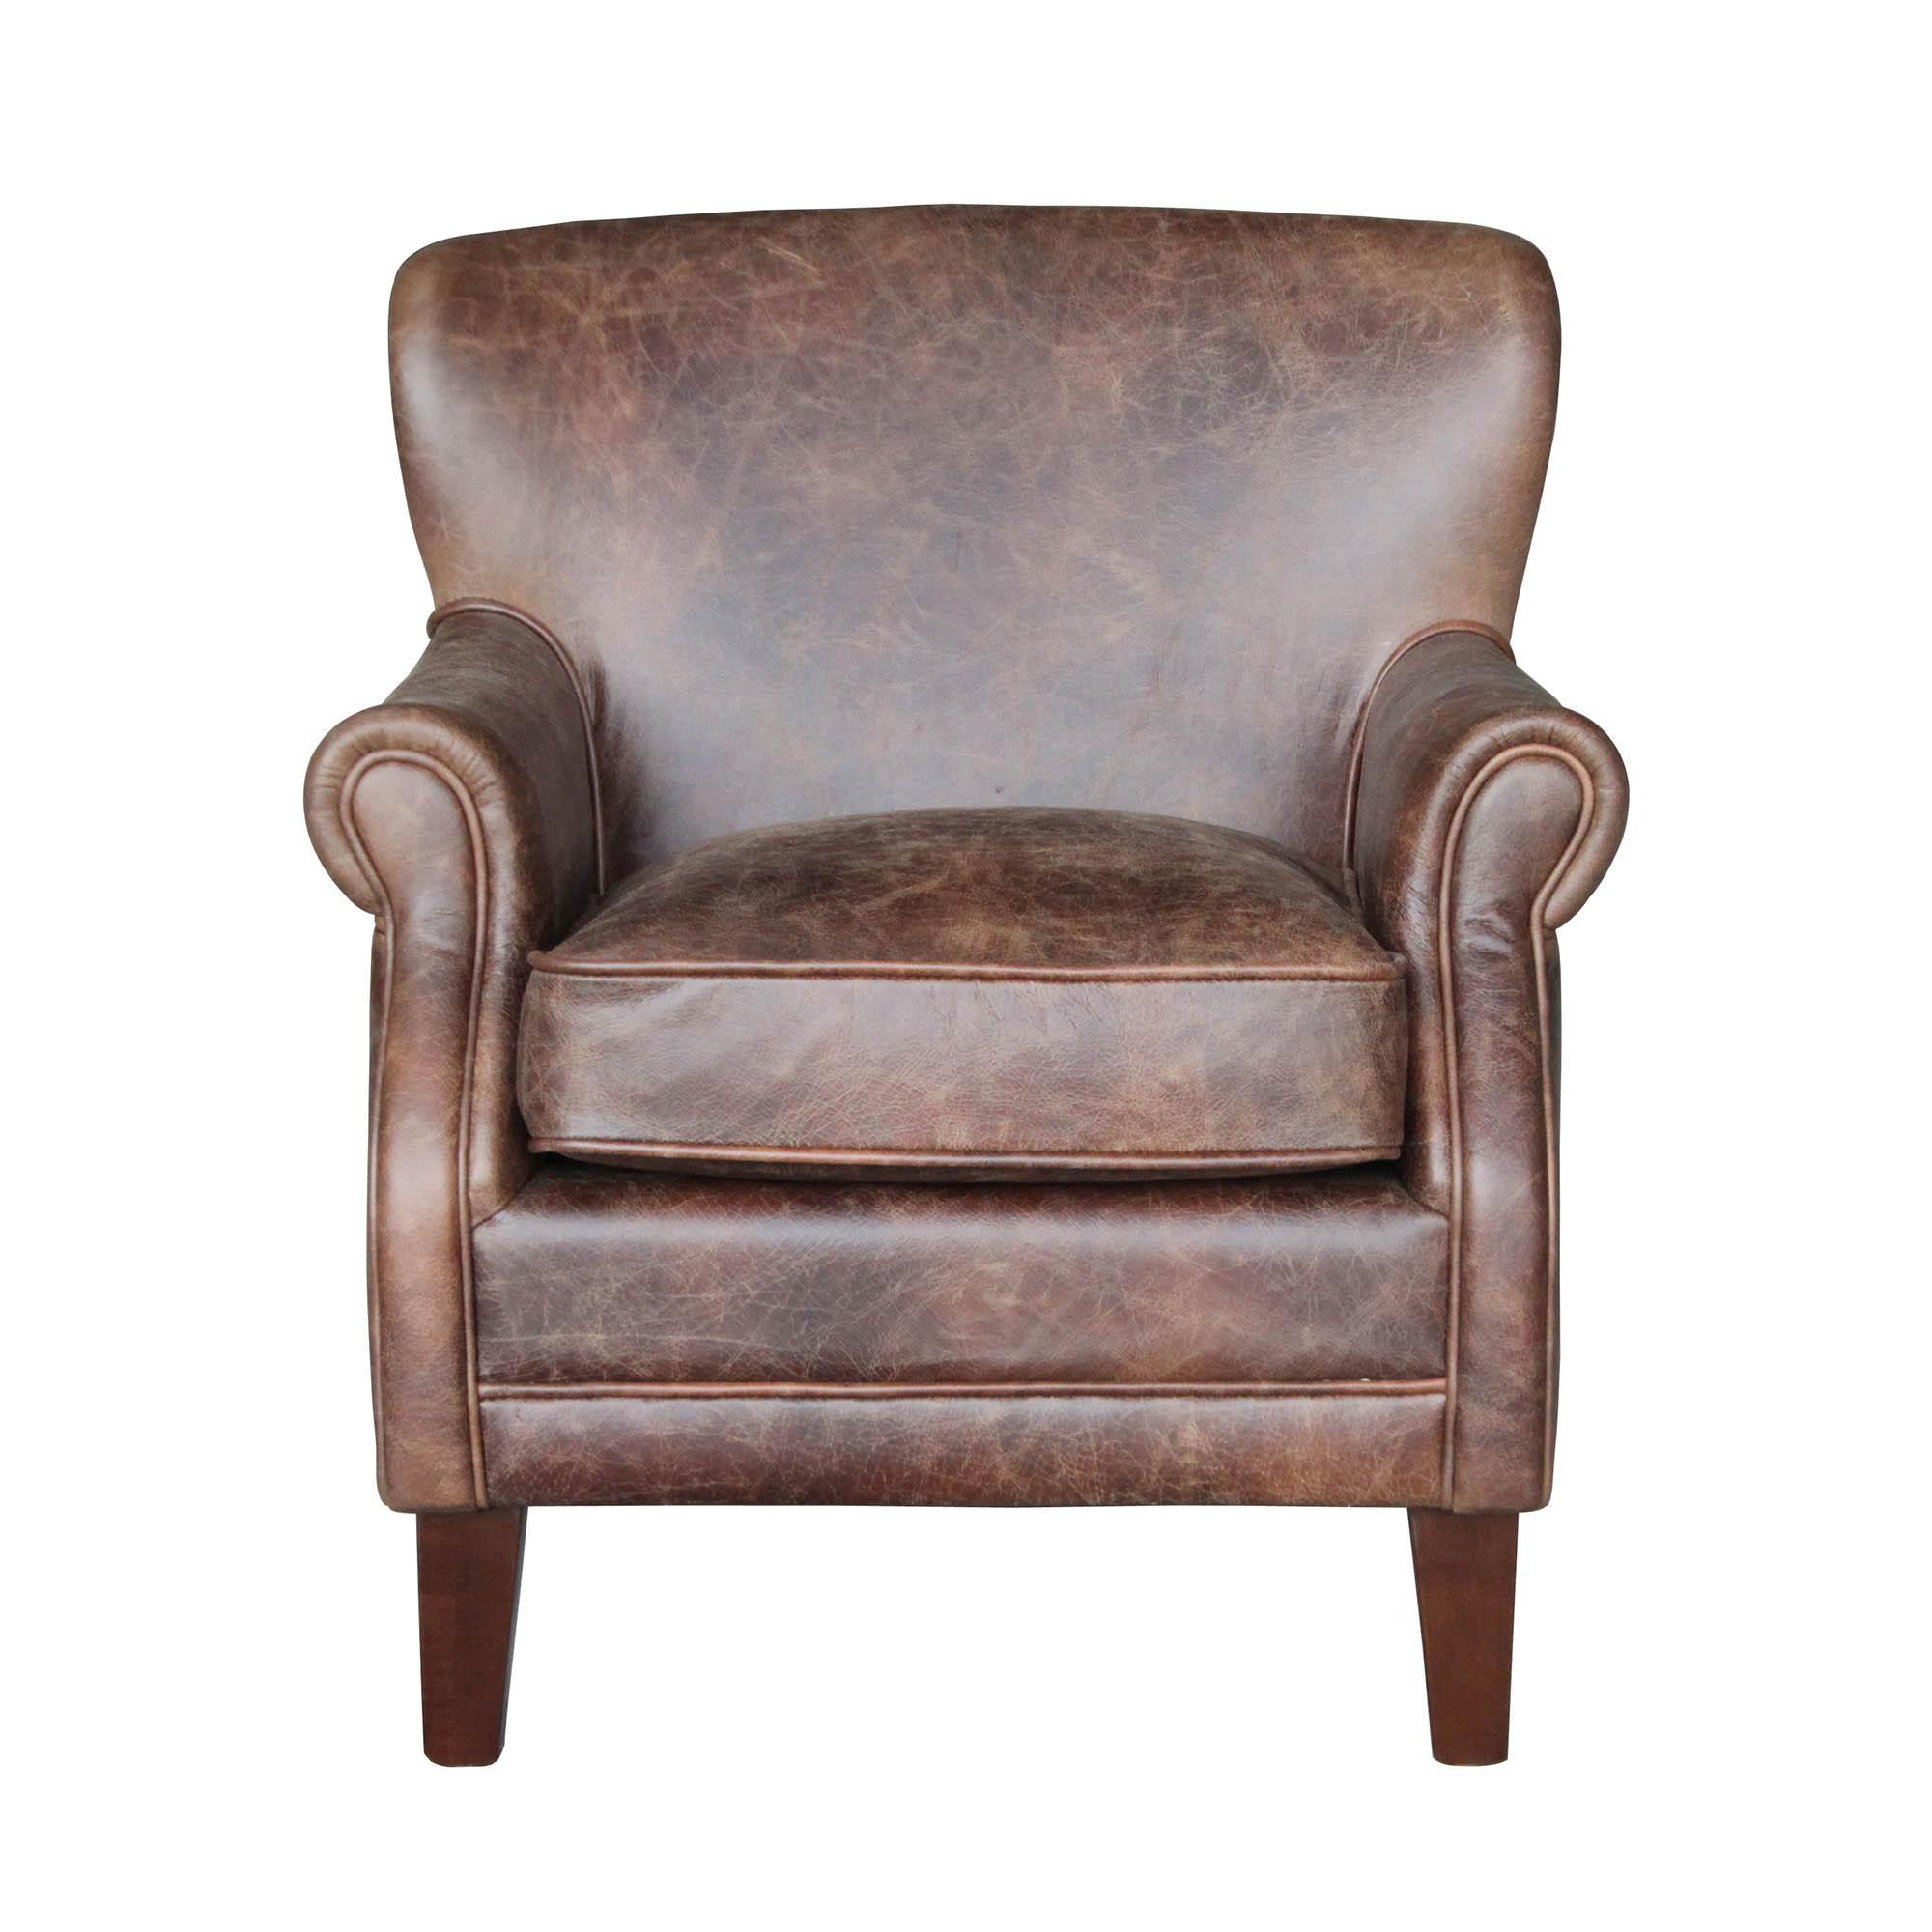 Leamington Leather Armchair - Brown | Dunelm